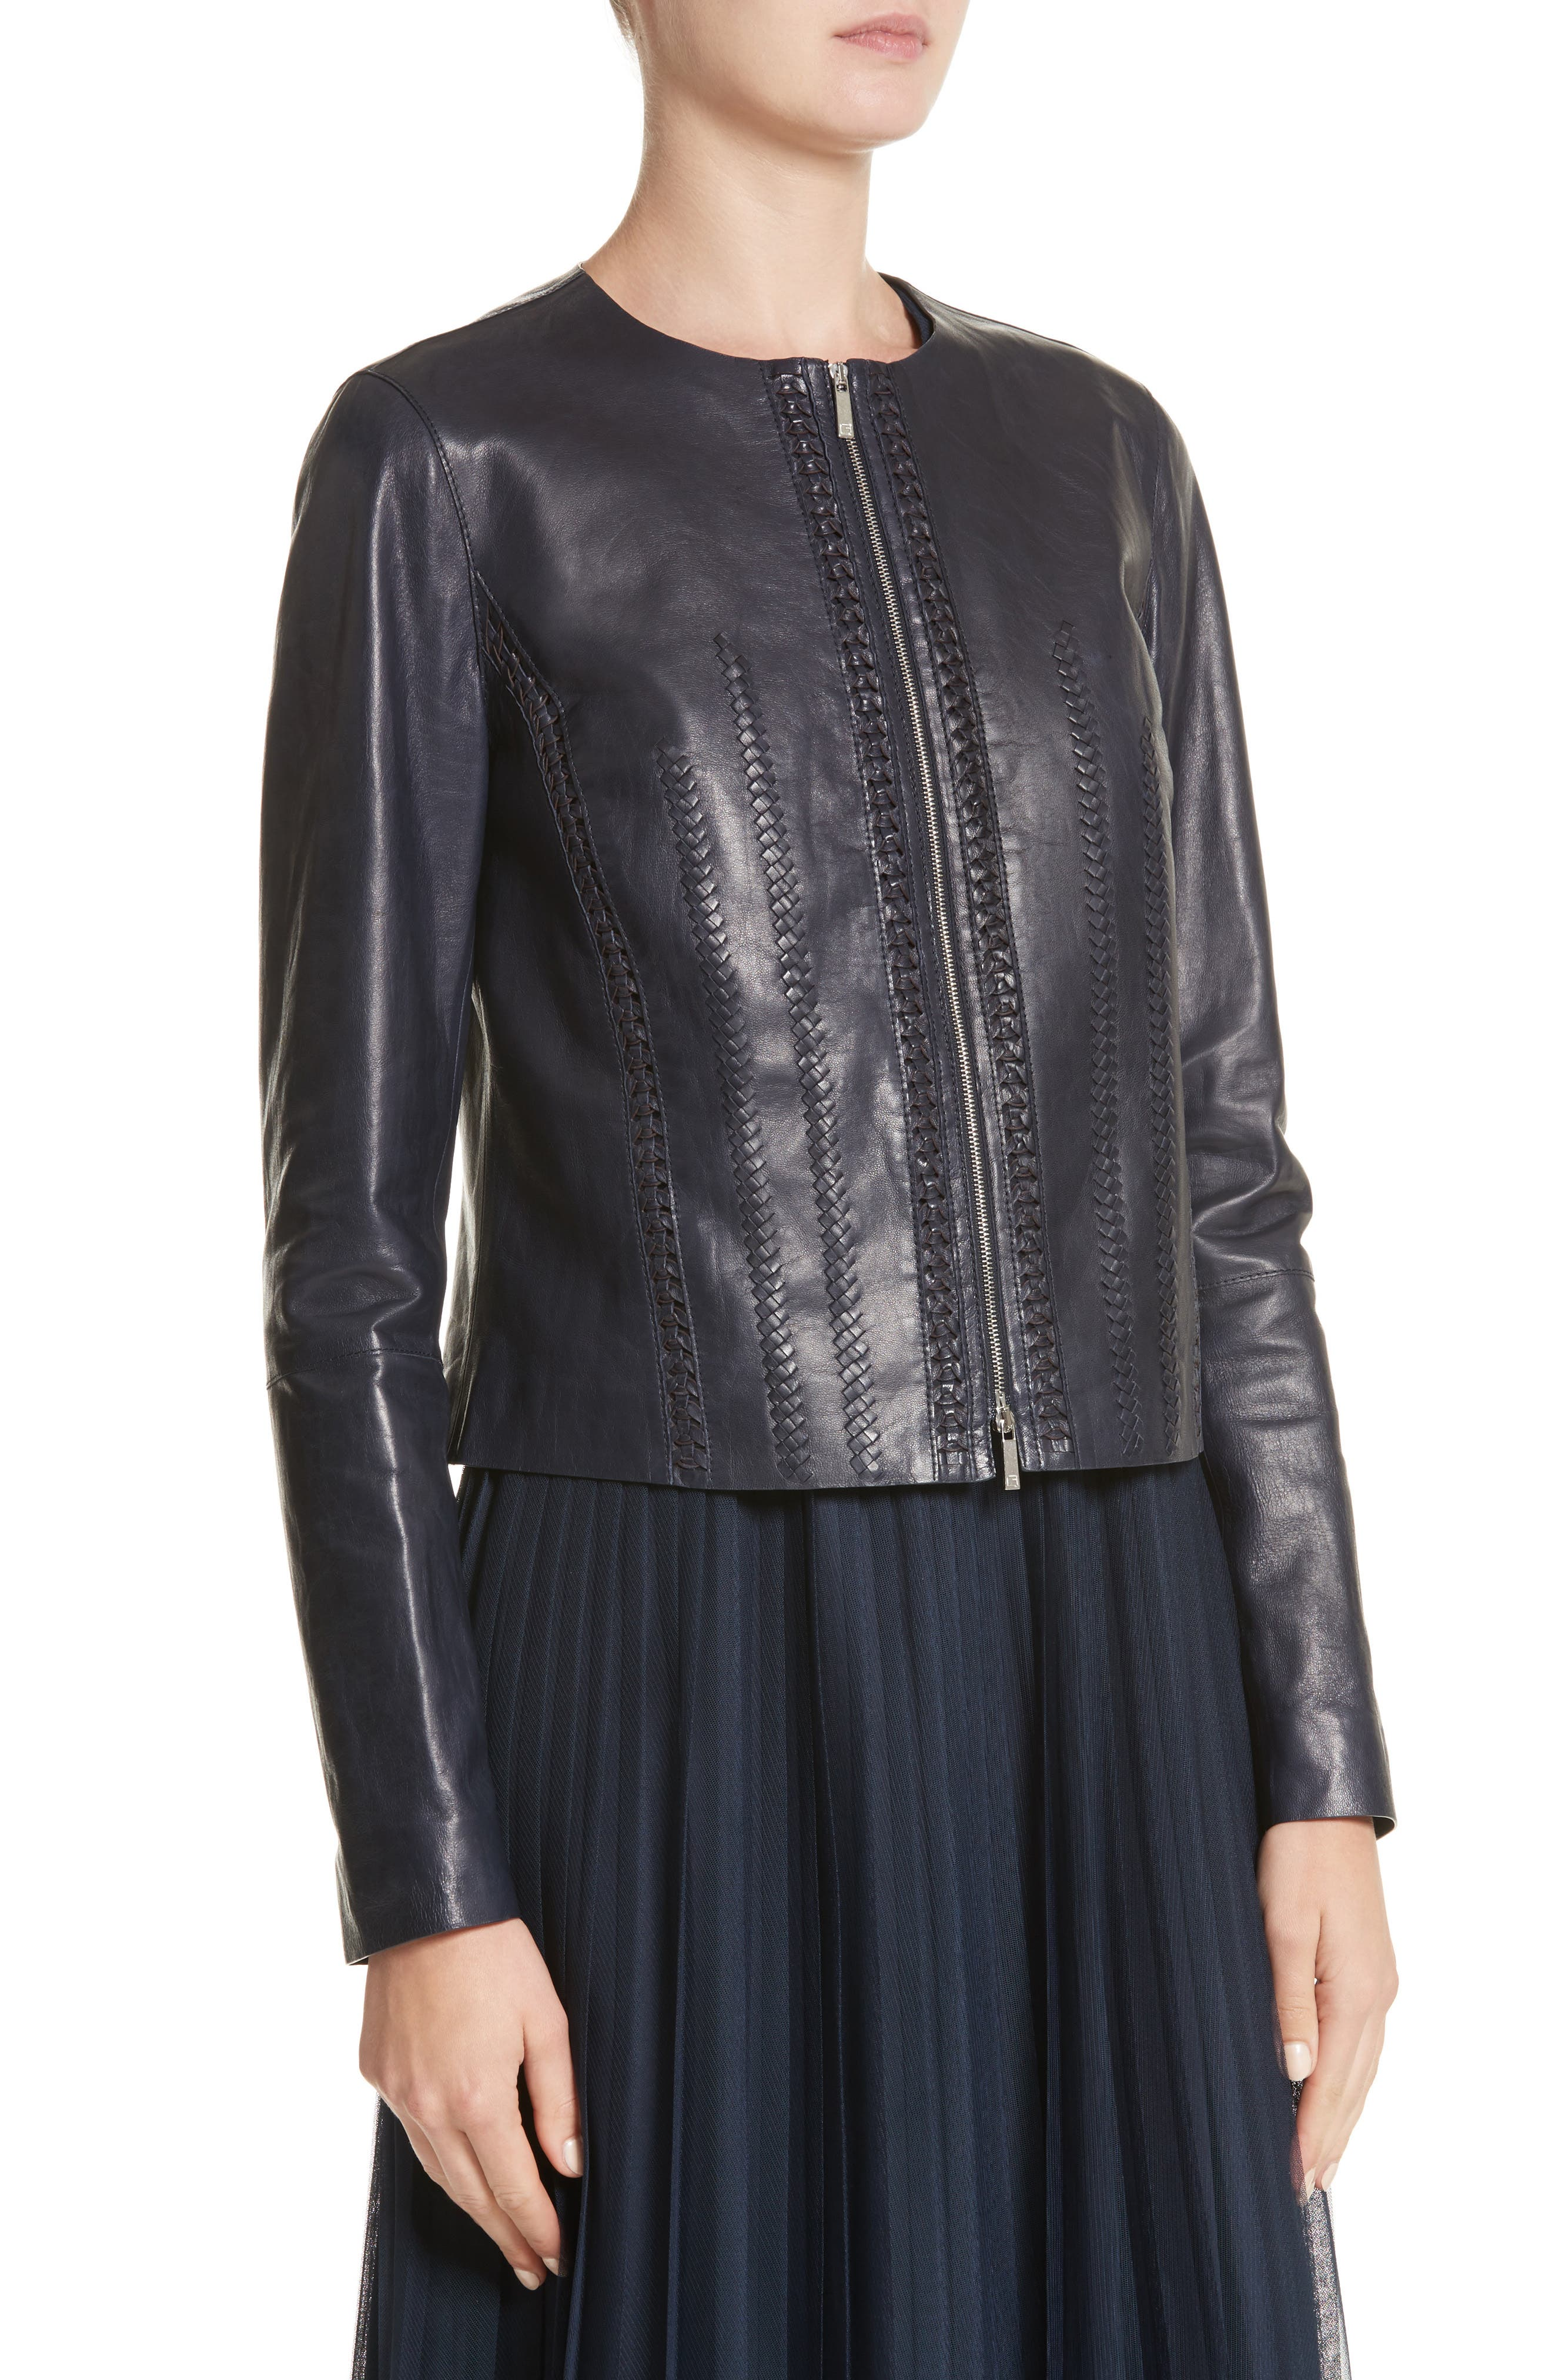 Clyde Lambskin Leather Jacket,                             Alternate thumbnail 4, color,                             479